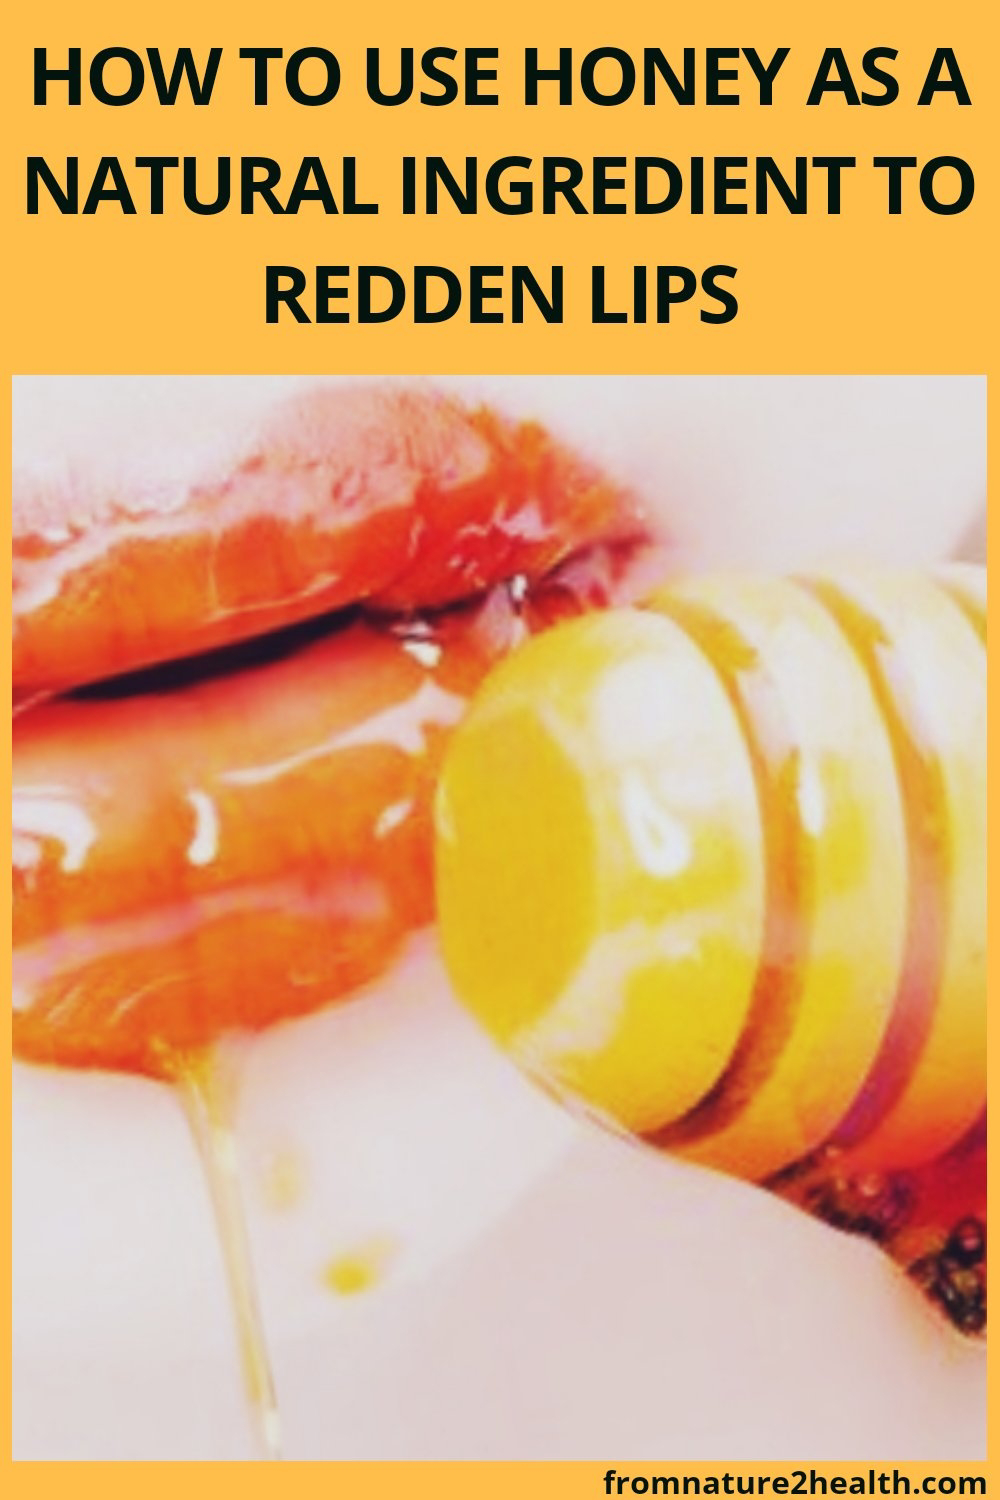 How to Use Honey as a Natural Ingredient to Redden Lips